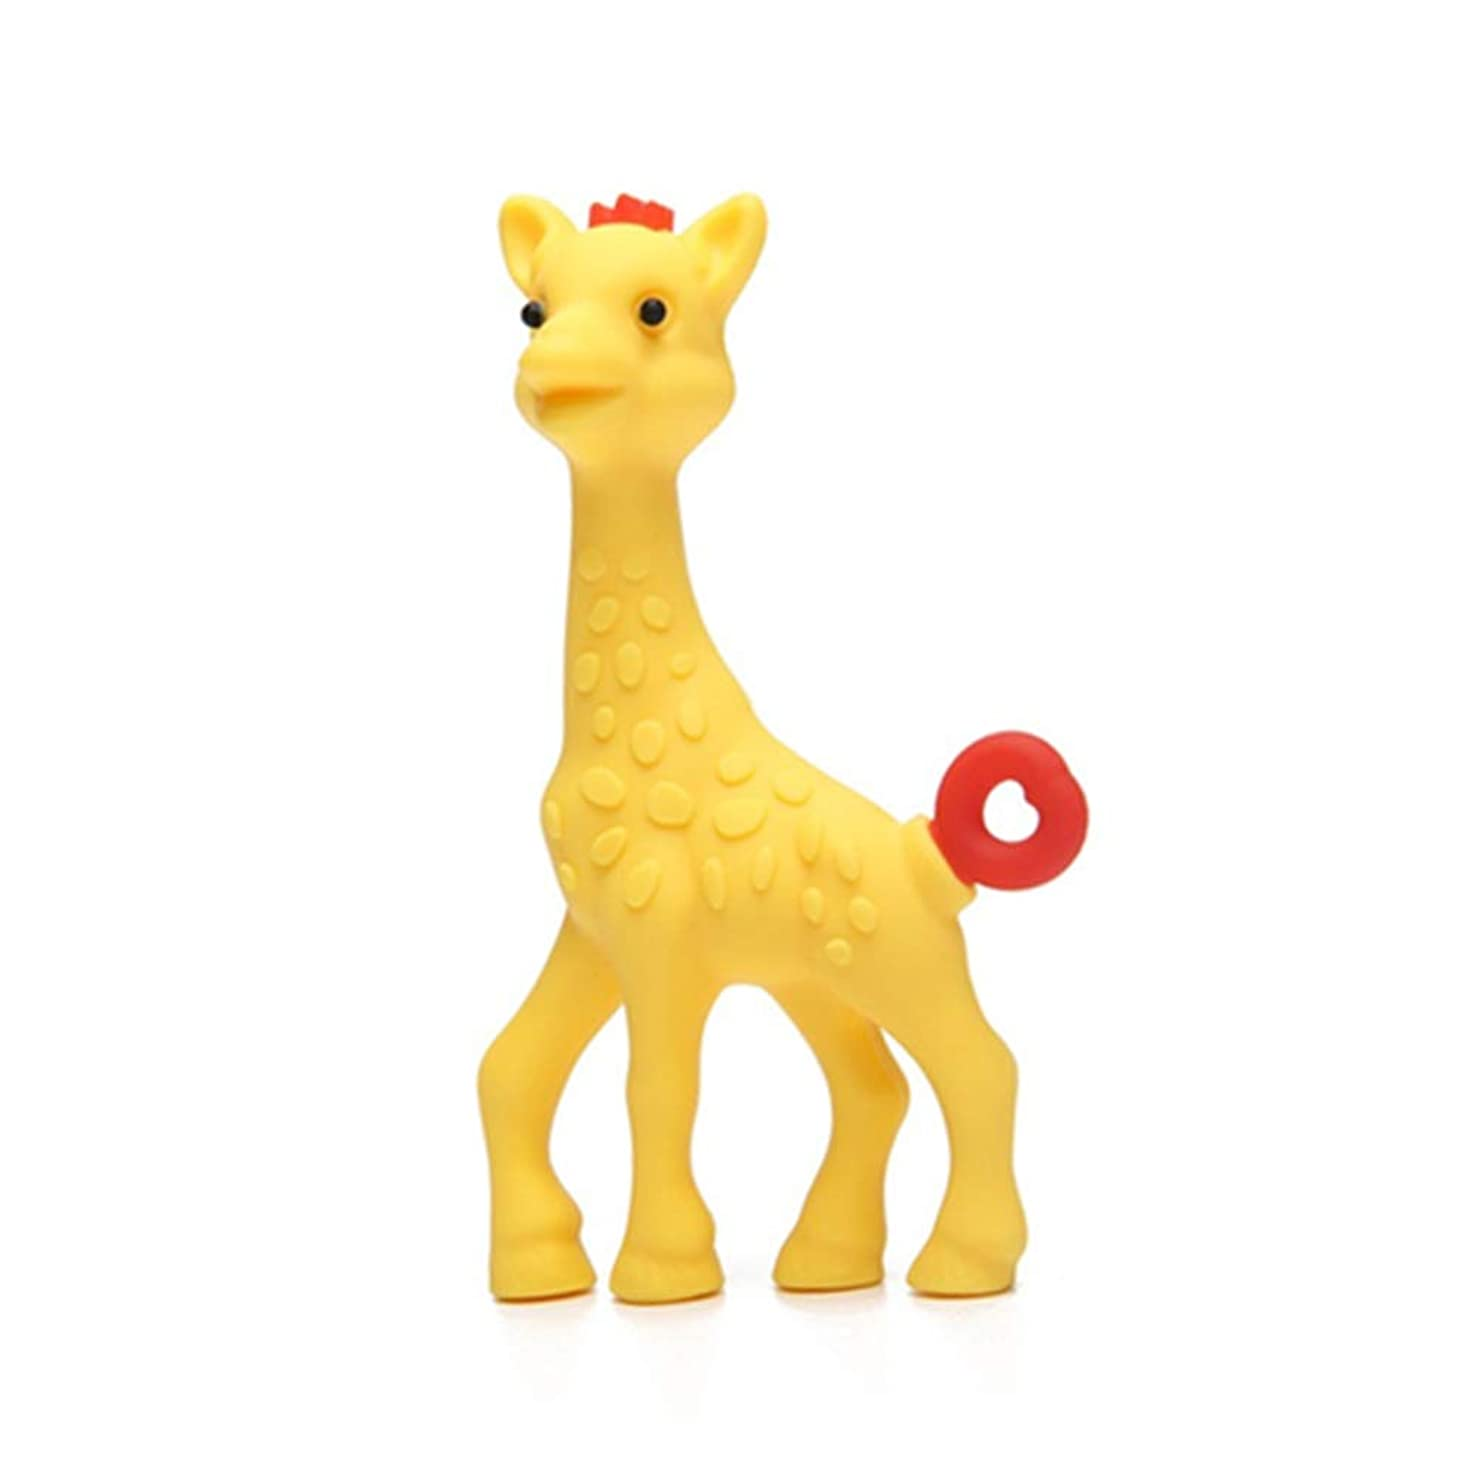 Giraffe Teether Baby Teething Toy for Infant Toddler, 100% Silicone BPA Free 12 Months (Yellow Sika Deer)